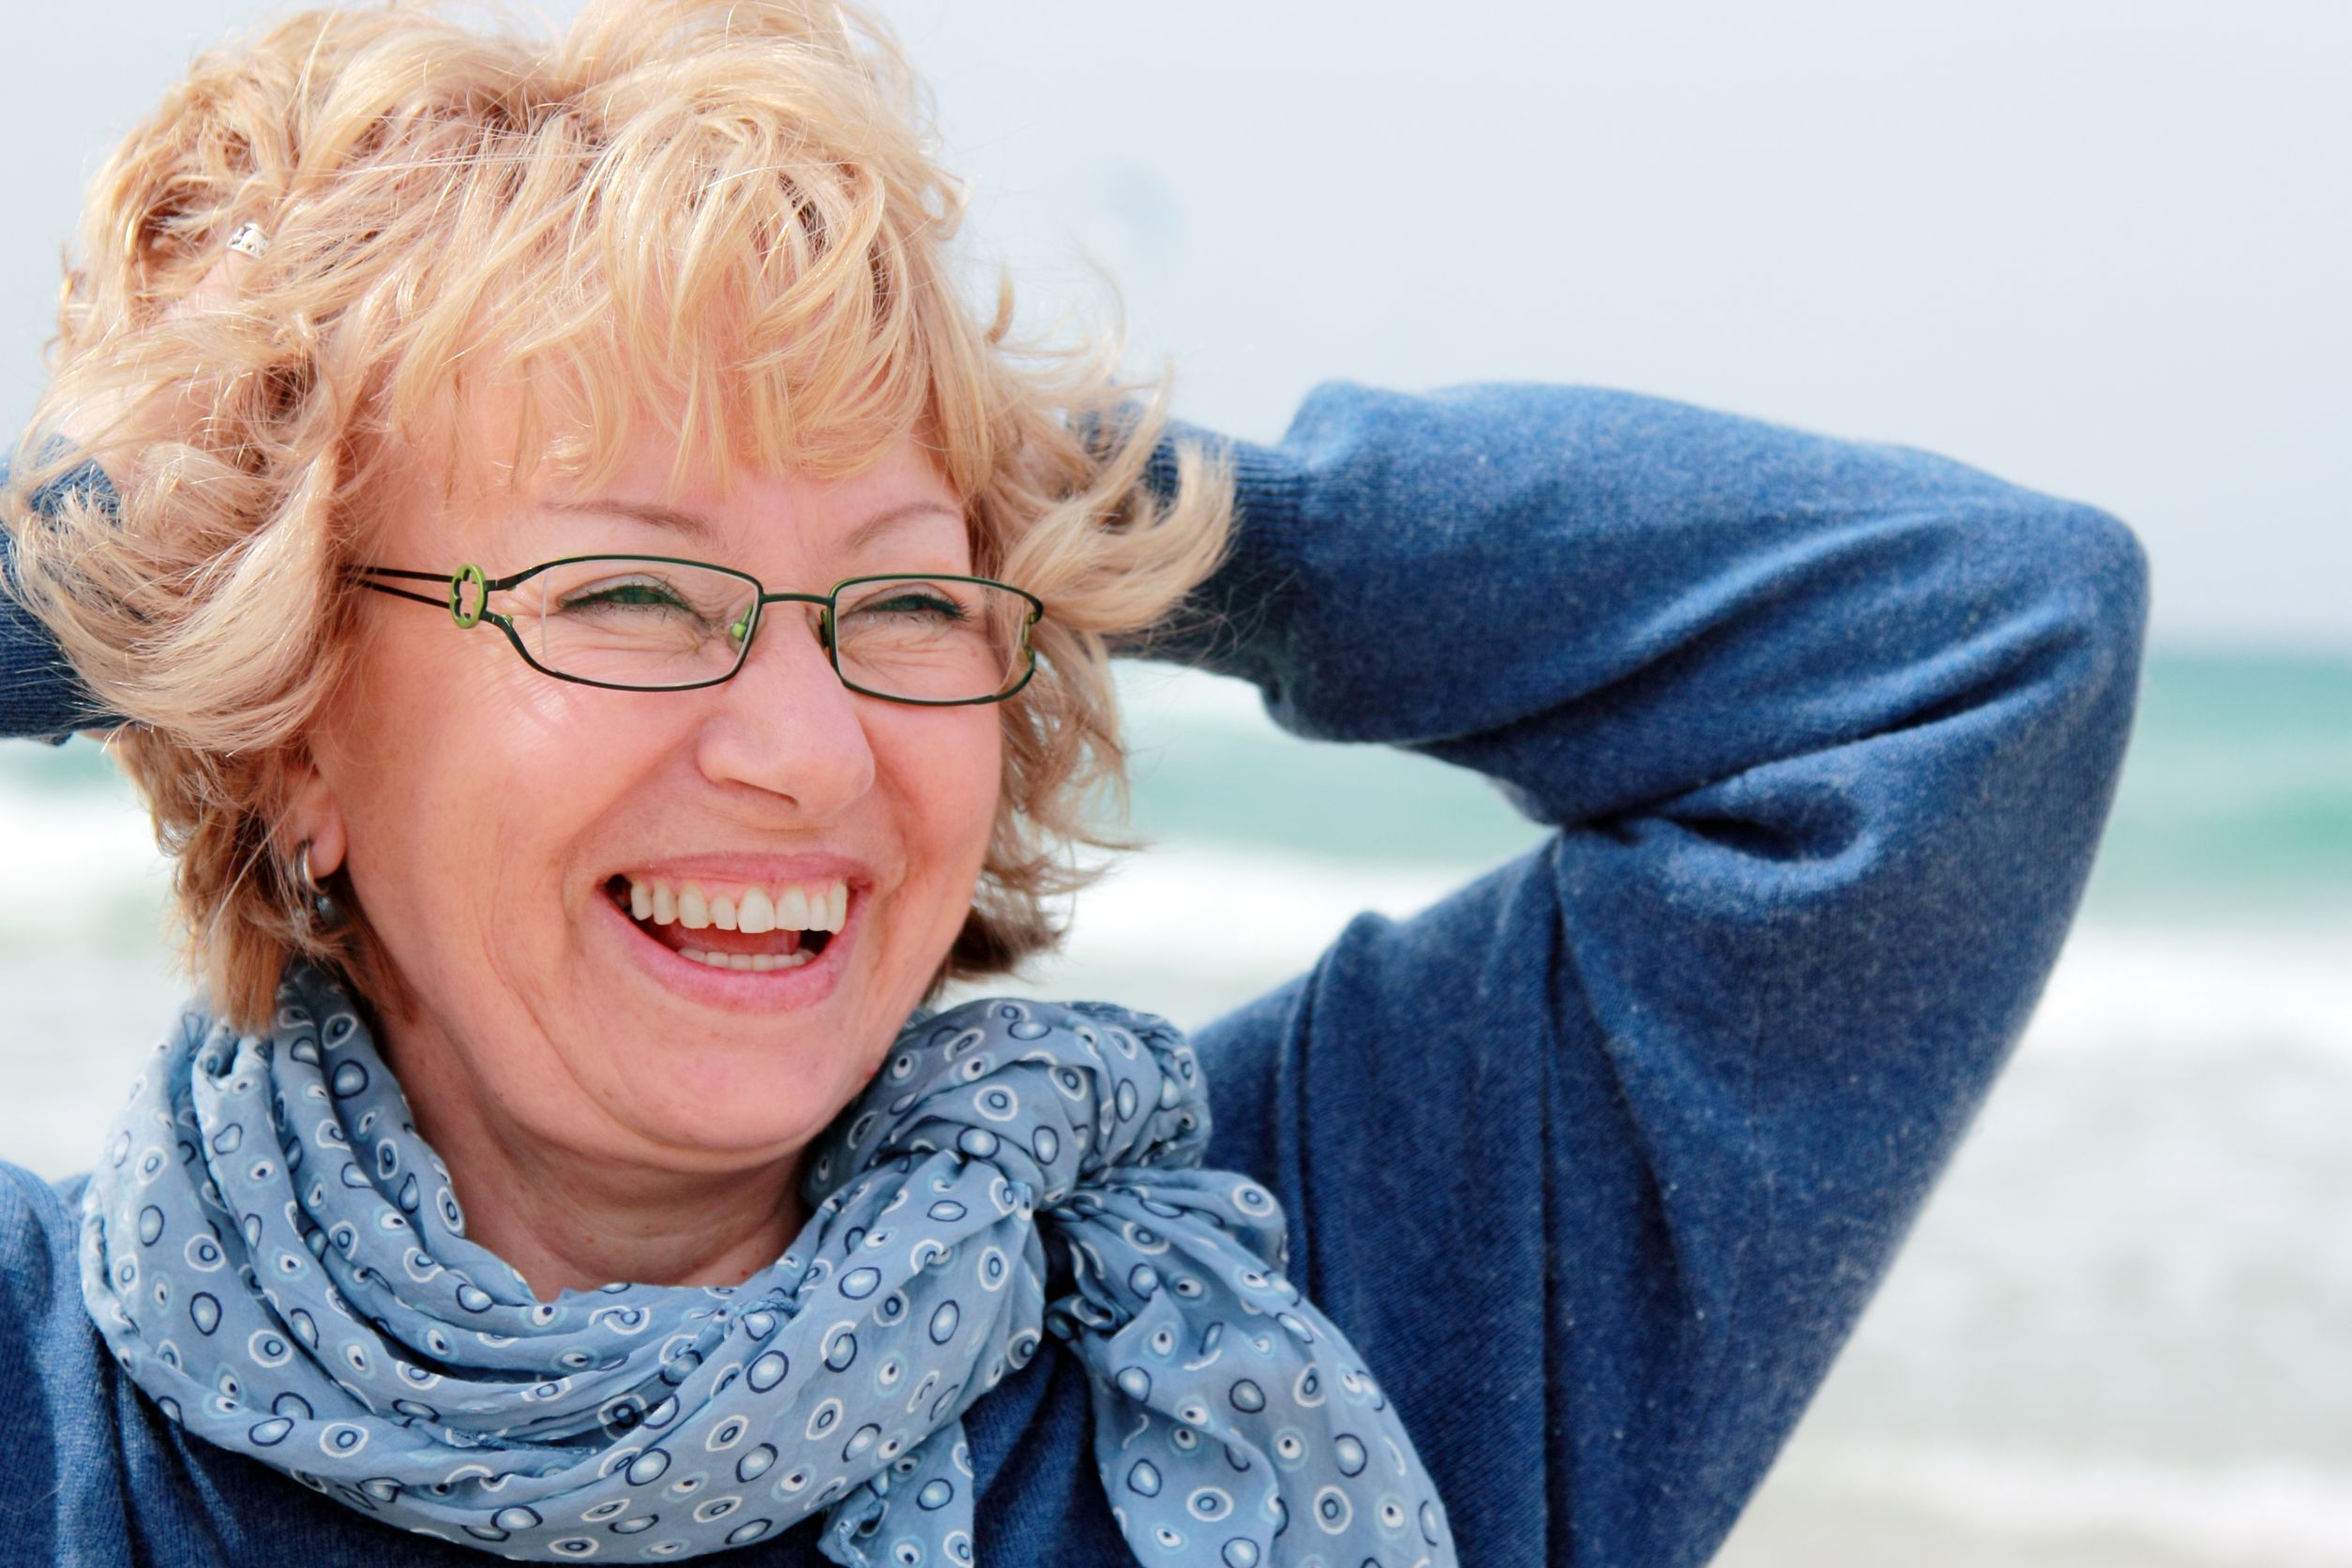 Women are getting better with age